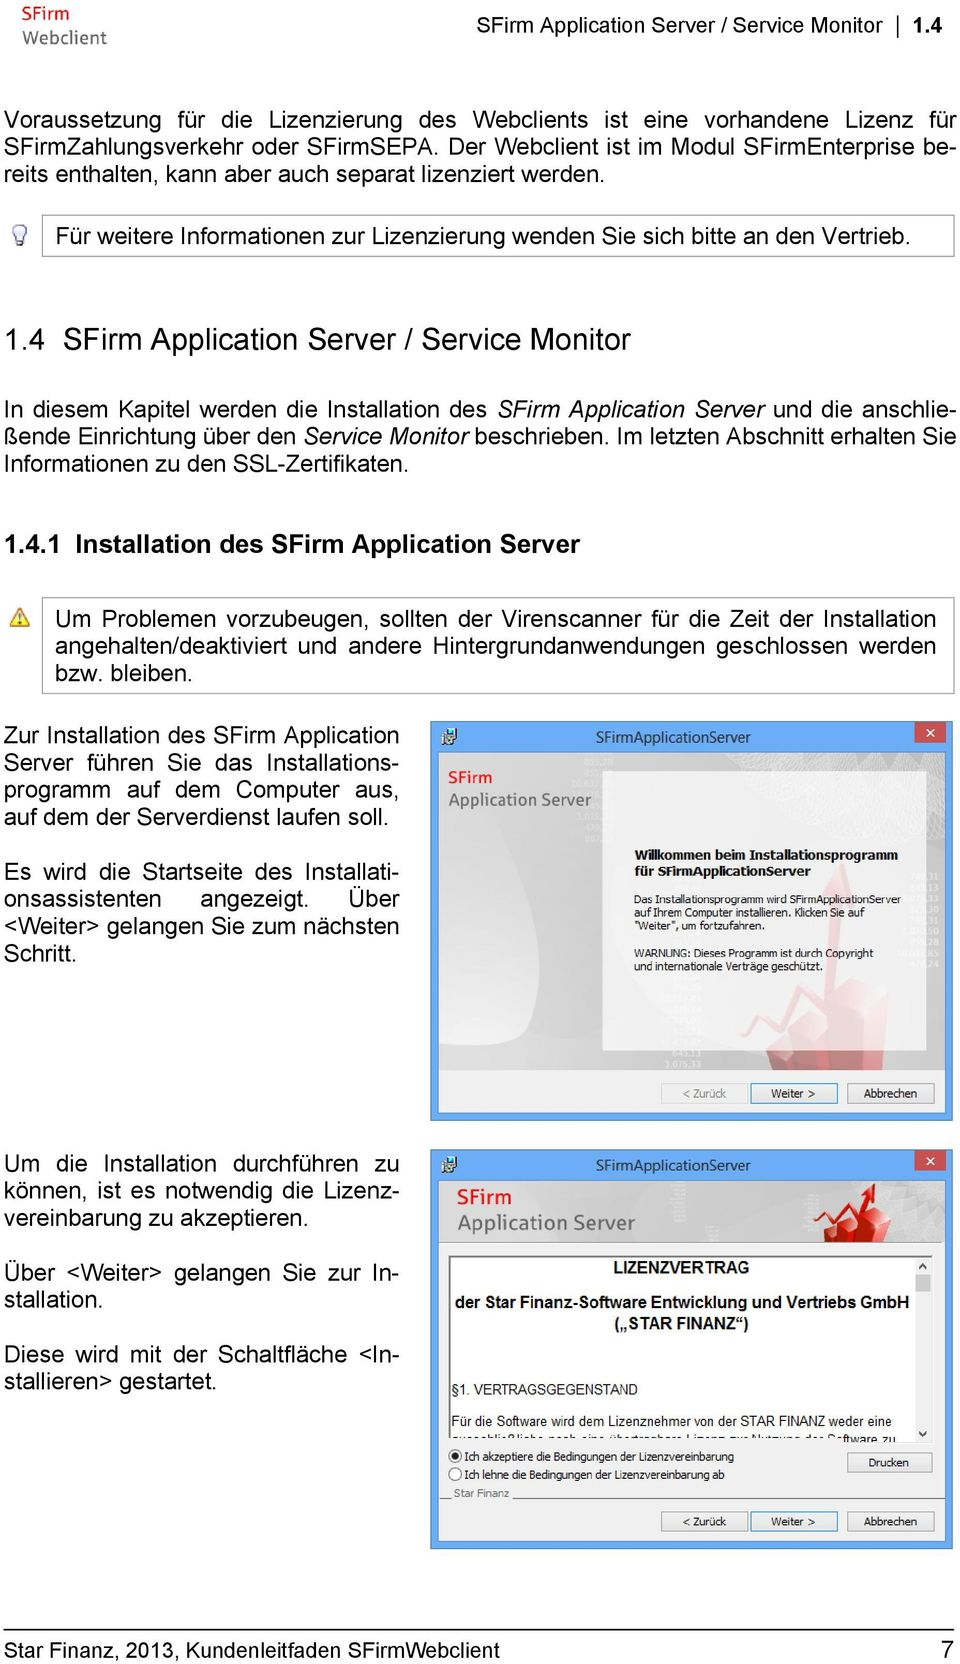 4 SFirm Application Server / Service Monitor In diesem Kapitel werden die Installation des SFirm Application Server und die anschließende Einrichtung über den Service Monitor beschrieben.